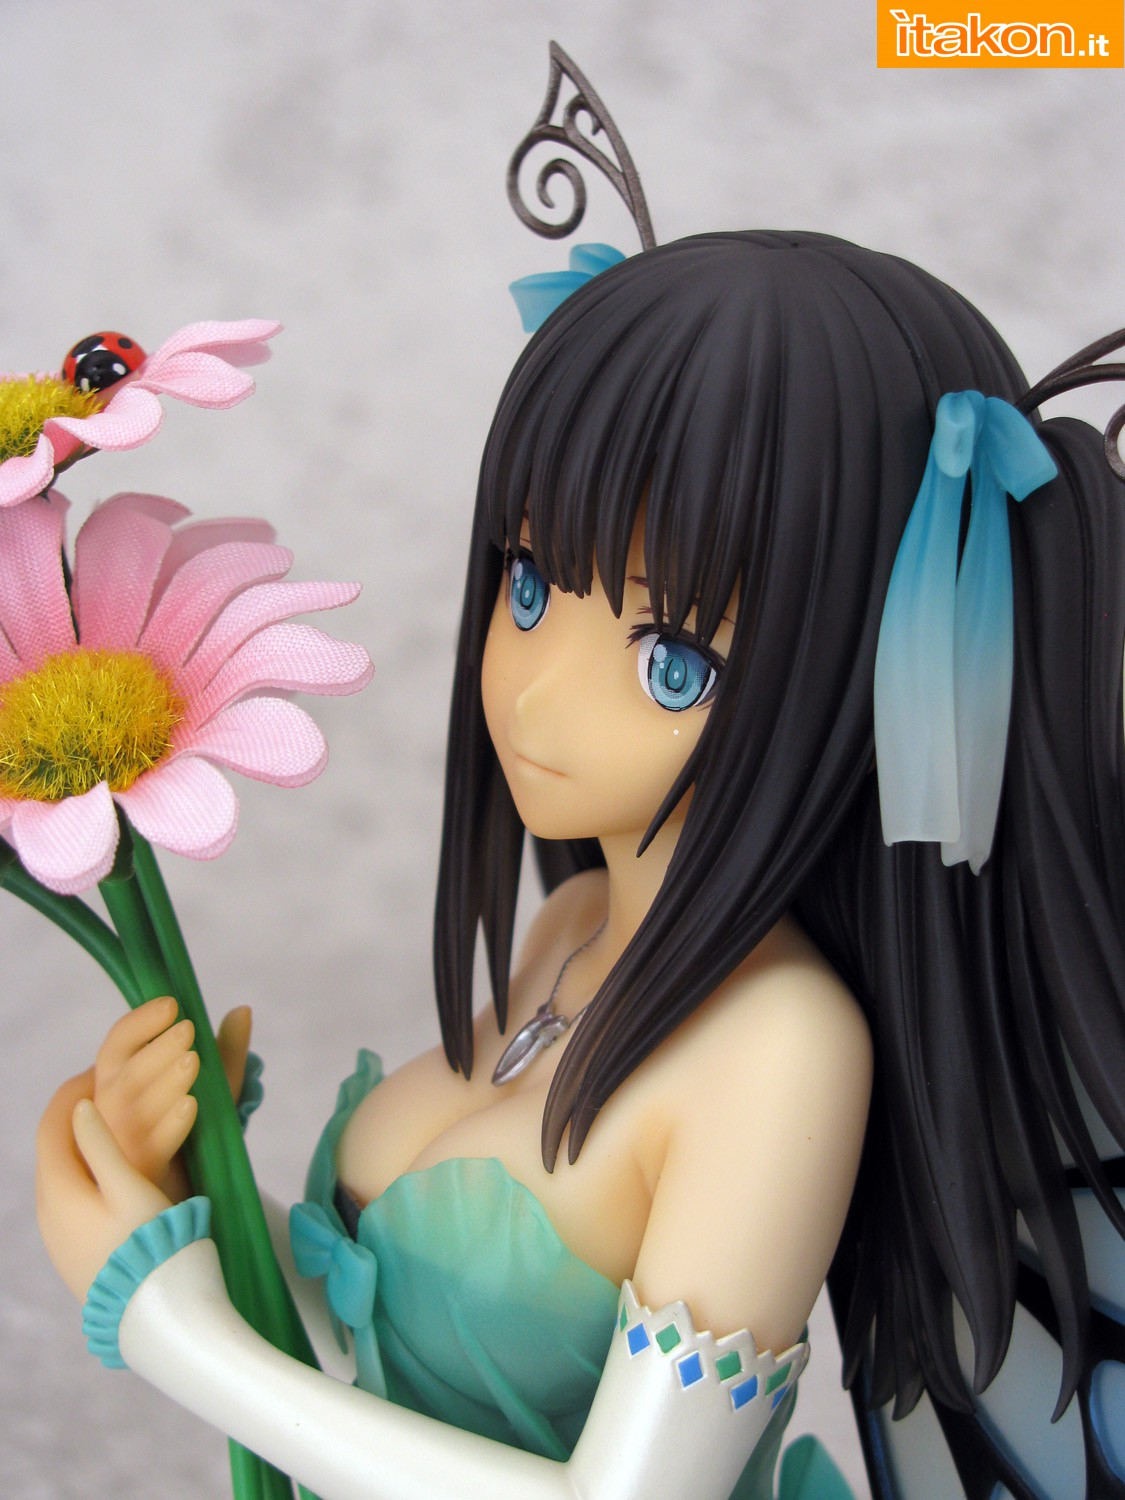 Link a 017 Daisy Tony Heroine Collection Kotobukiya recensione